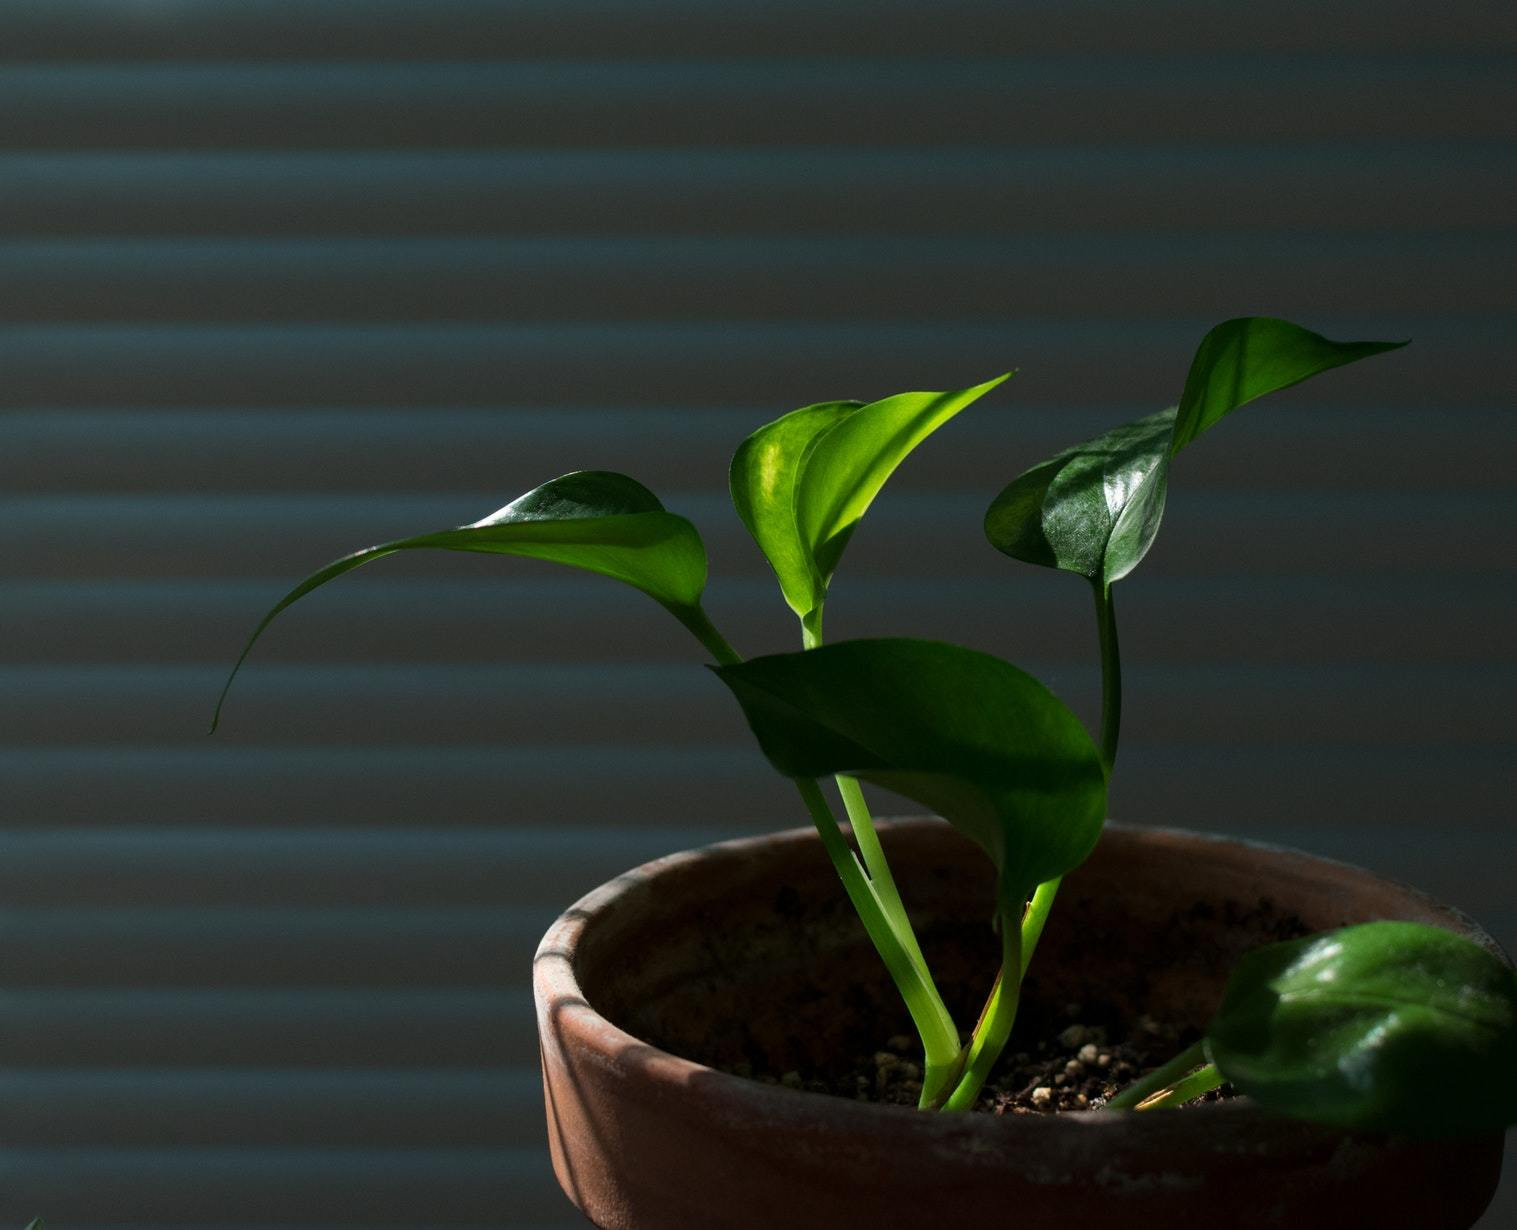 A plant symoblising the peace and calm therapy and counselling can bring